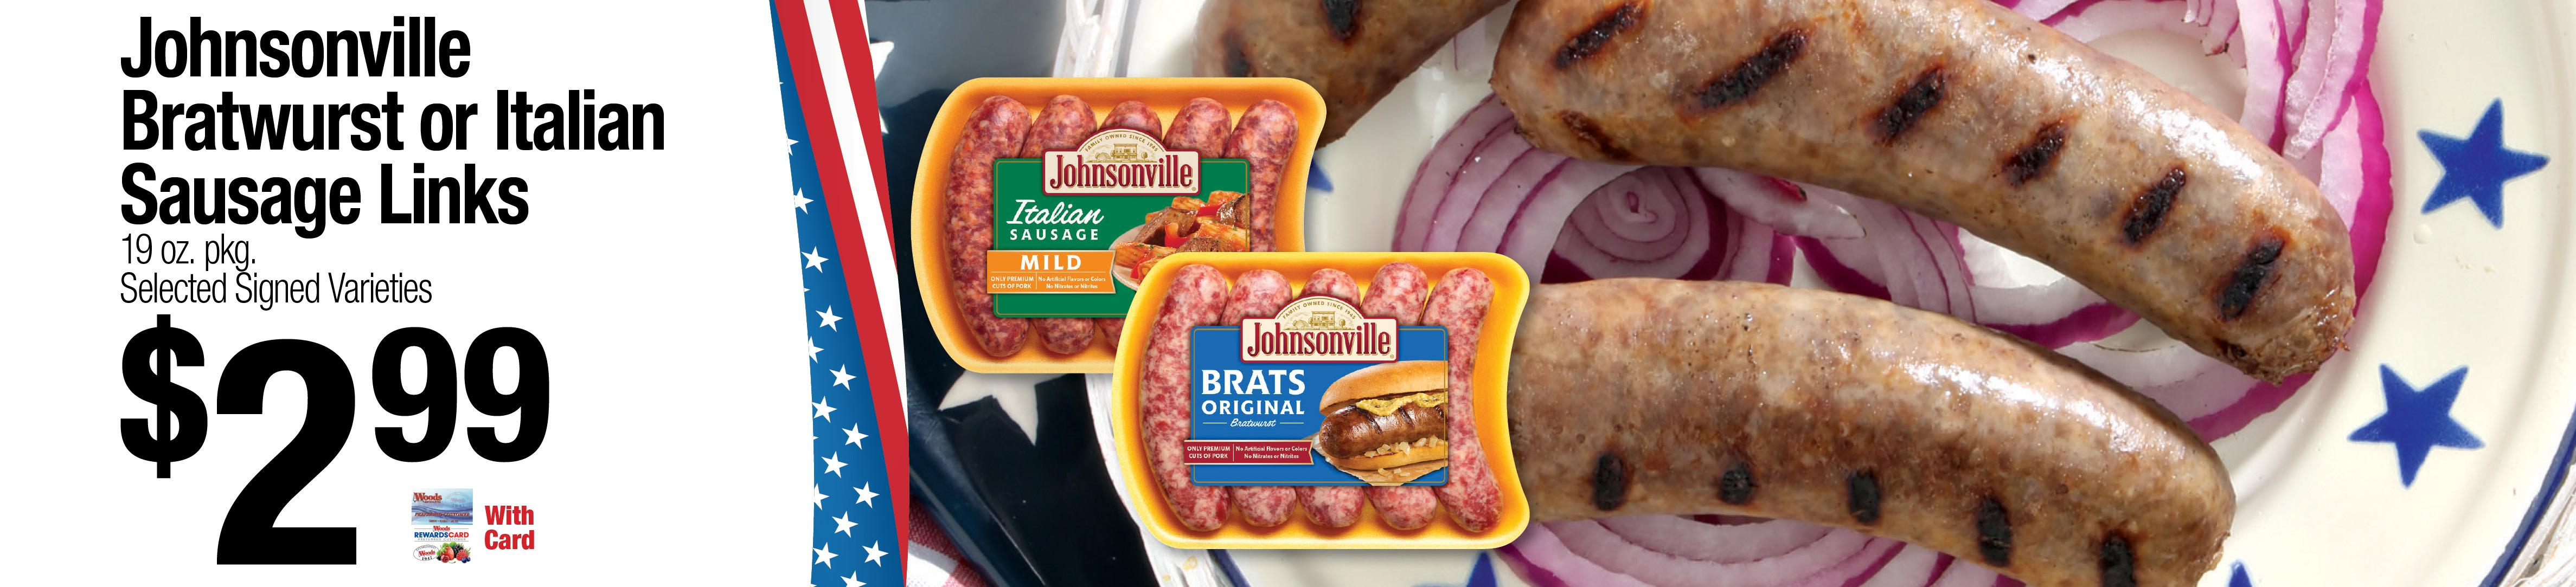 Johnsonville Bratwurst or Italian Sausage $2.99